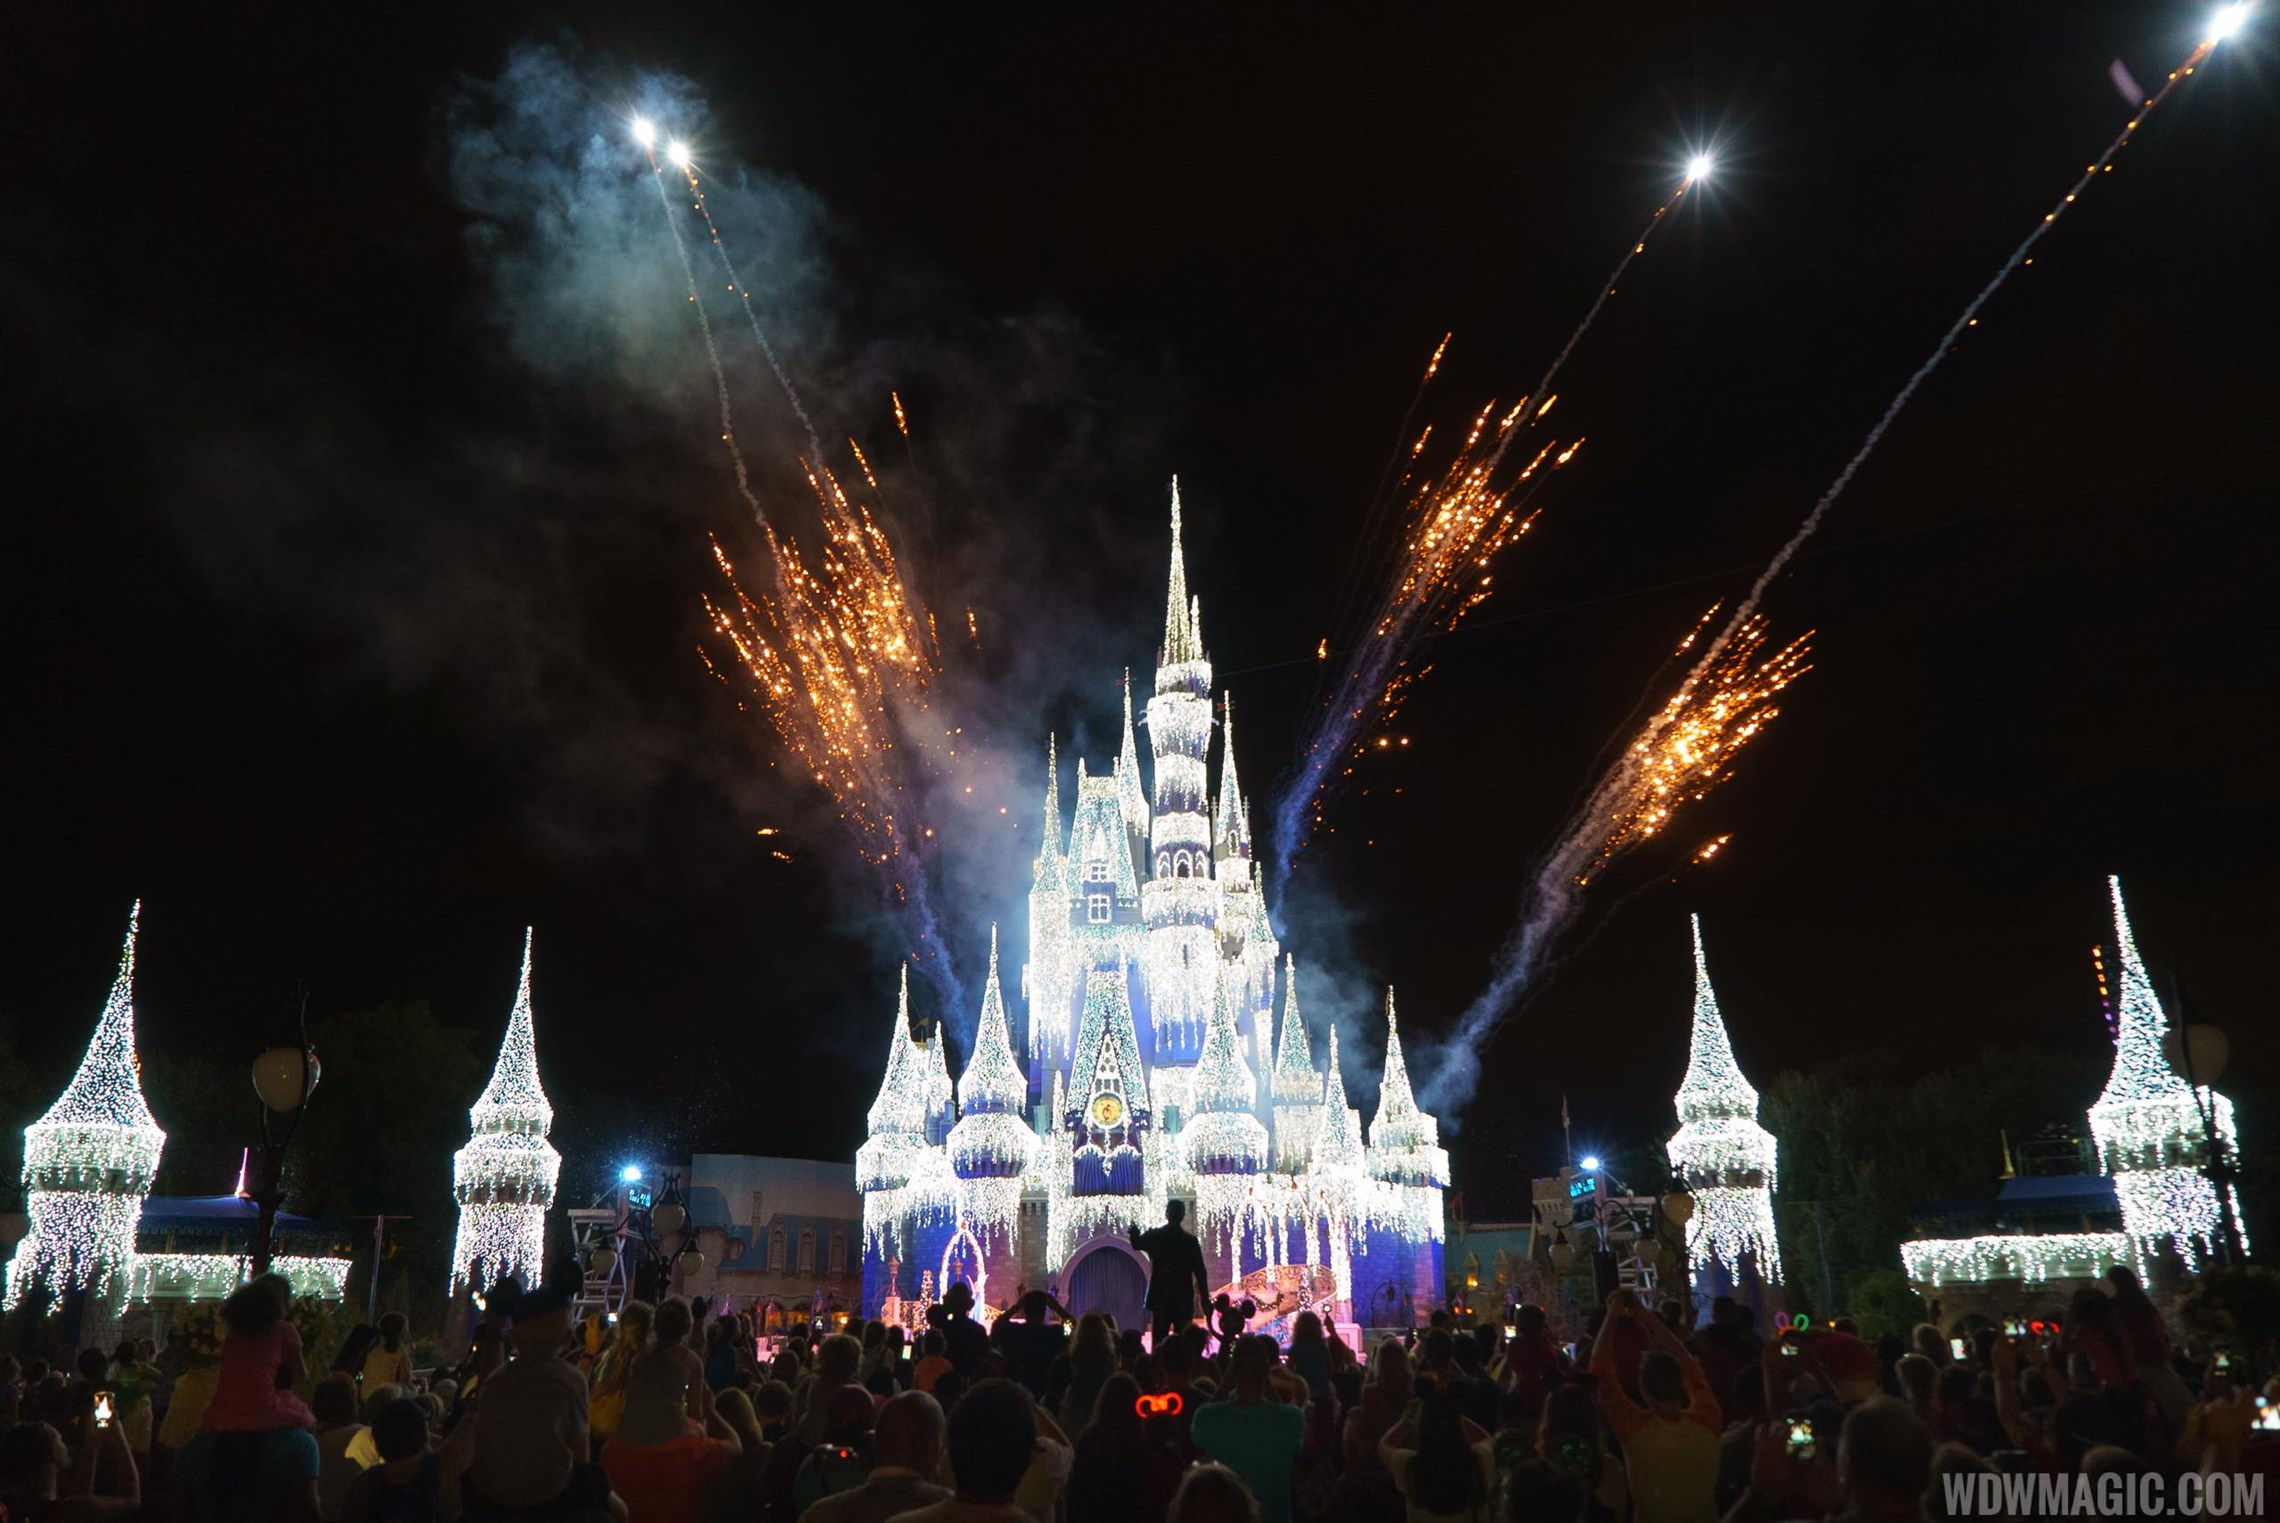 Castle Dreamlights on the new turrets